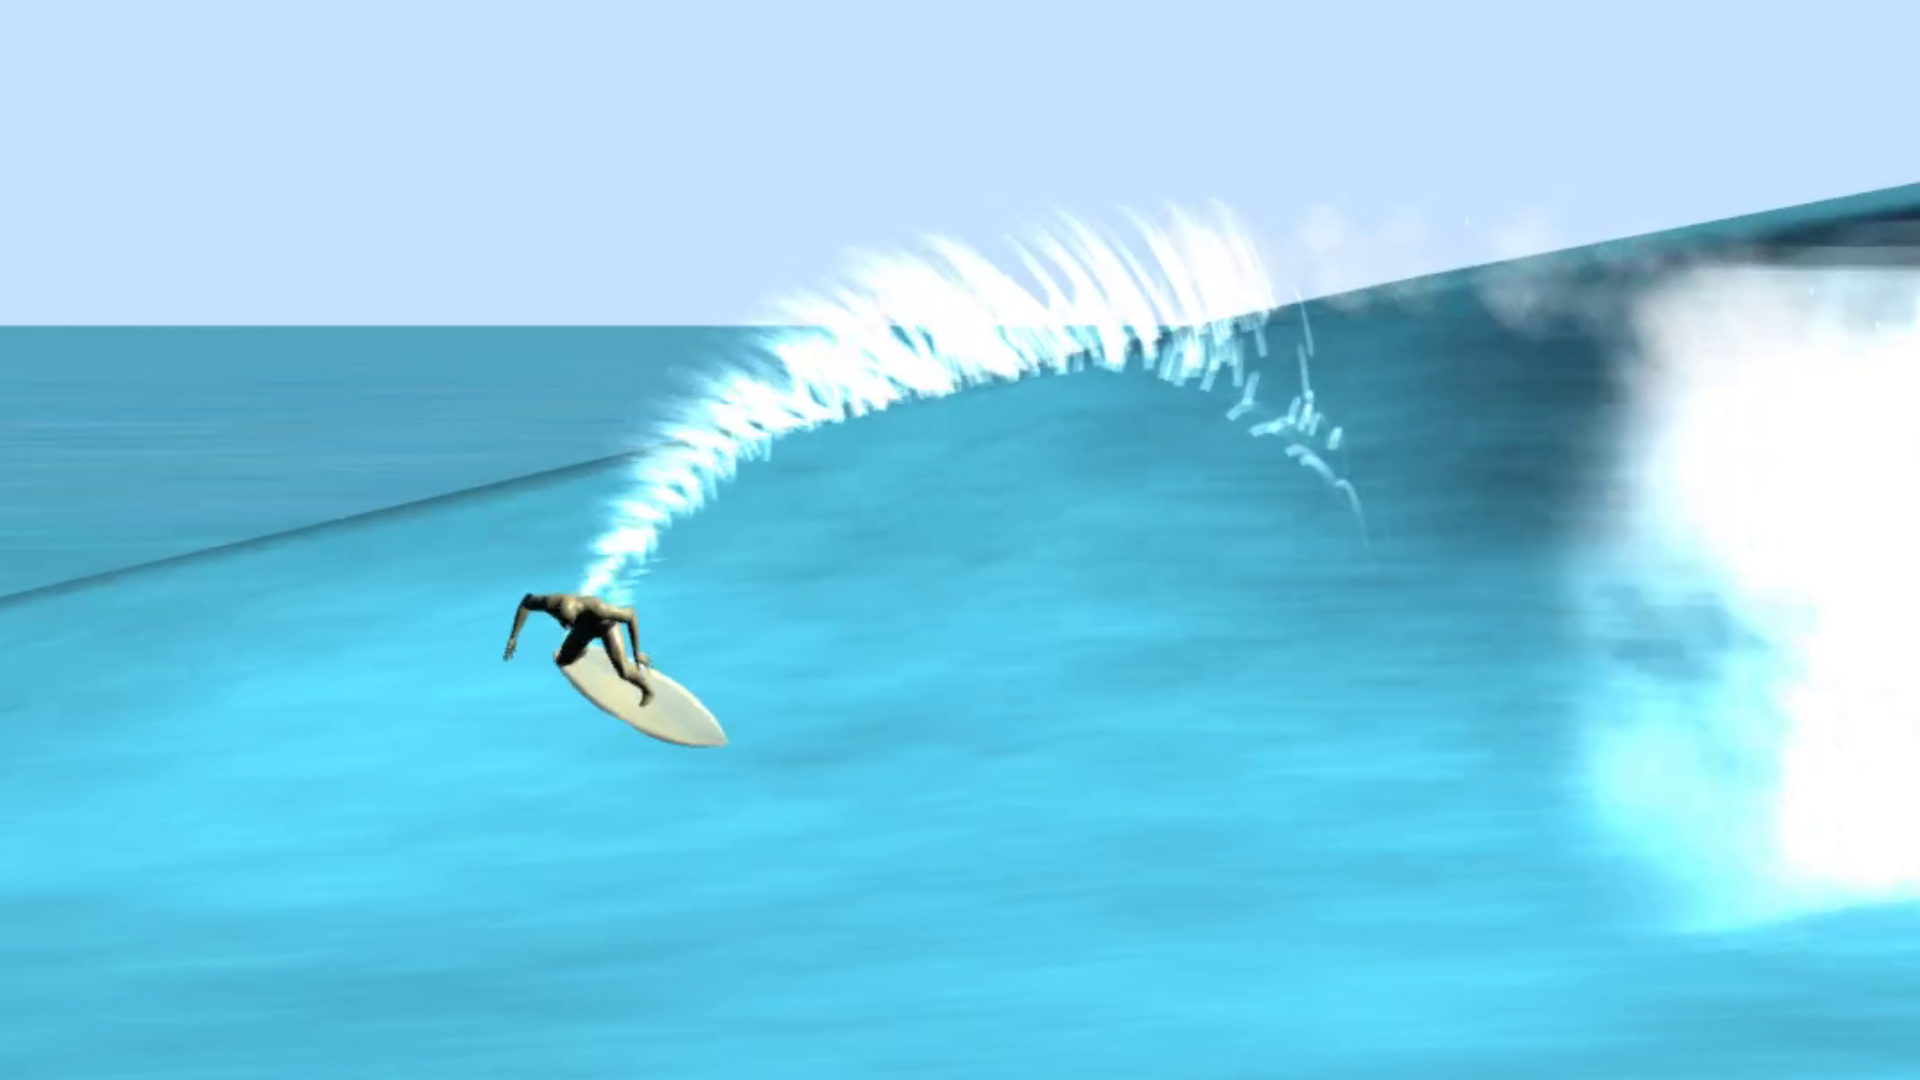 3D Physics Surfing Game Free Demo - Search For Surf by cuttinged